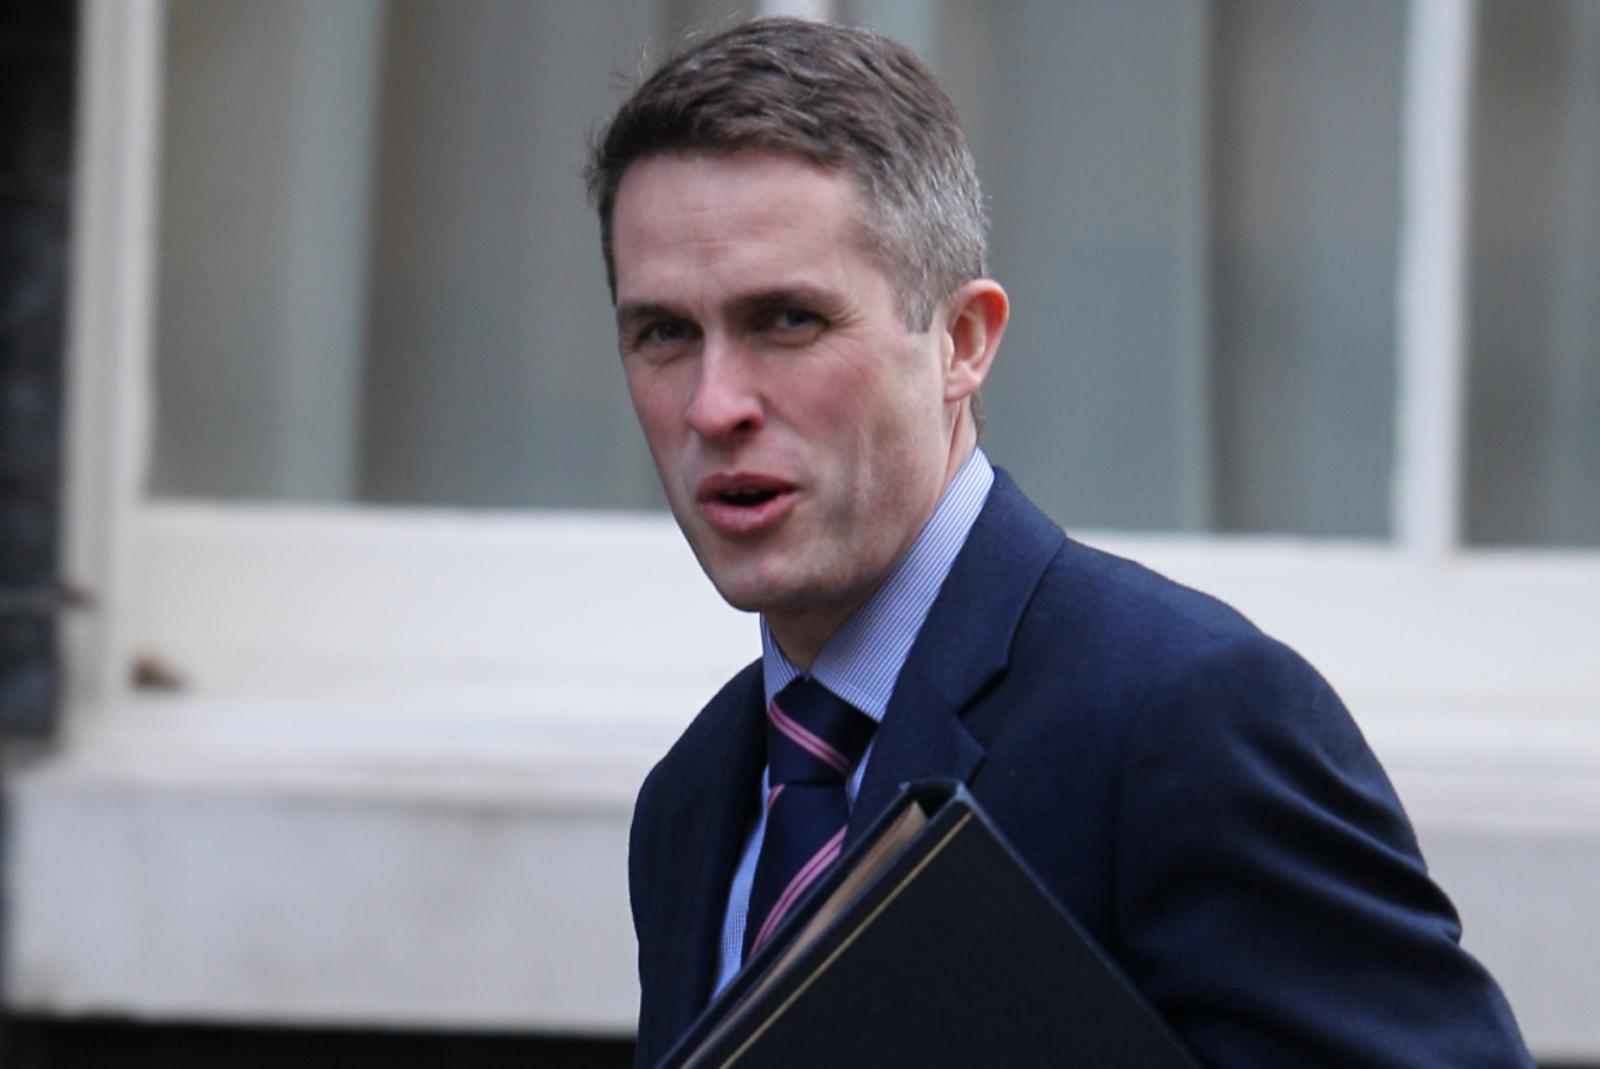 Gavin Williamson responds to latest Russian attack by putting his fingers in his ears and saying 'ner ner na ner I can't hear you'